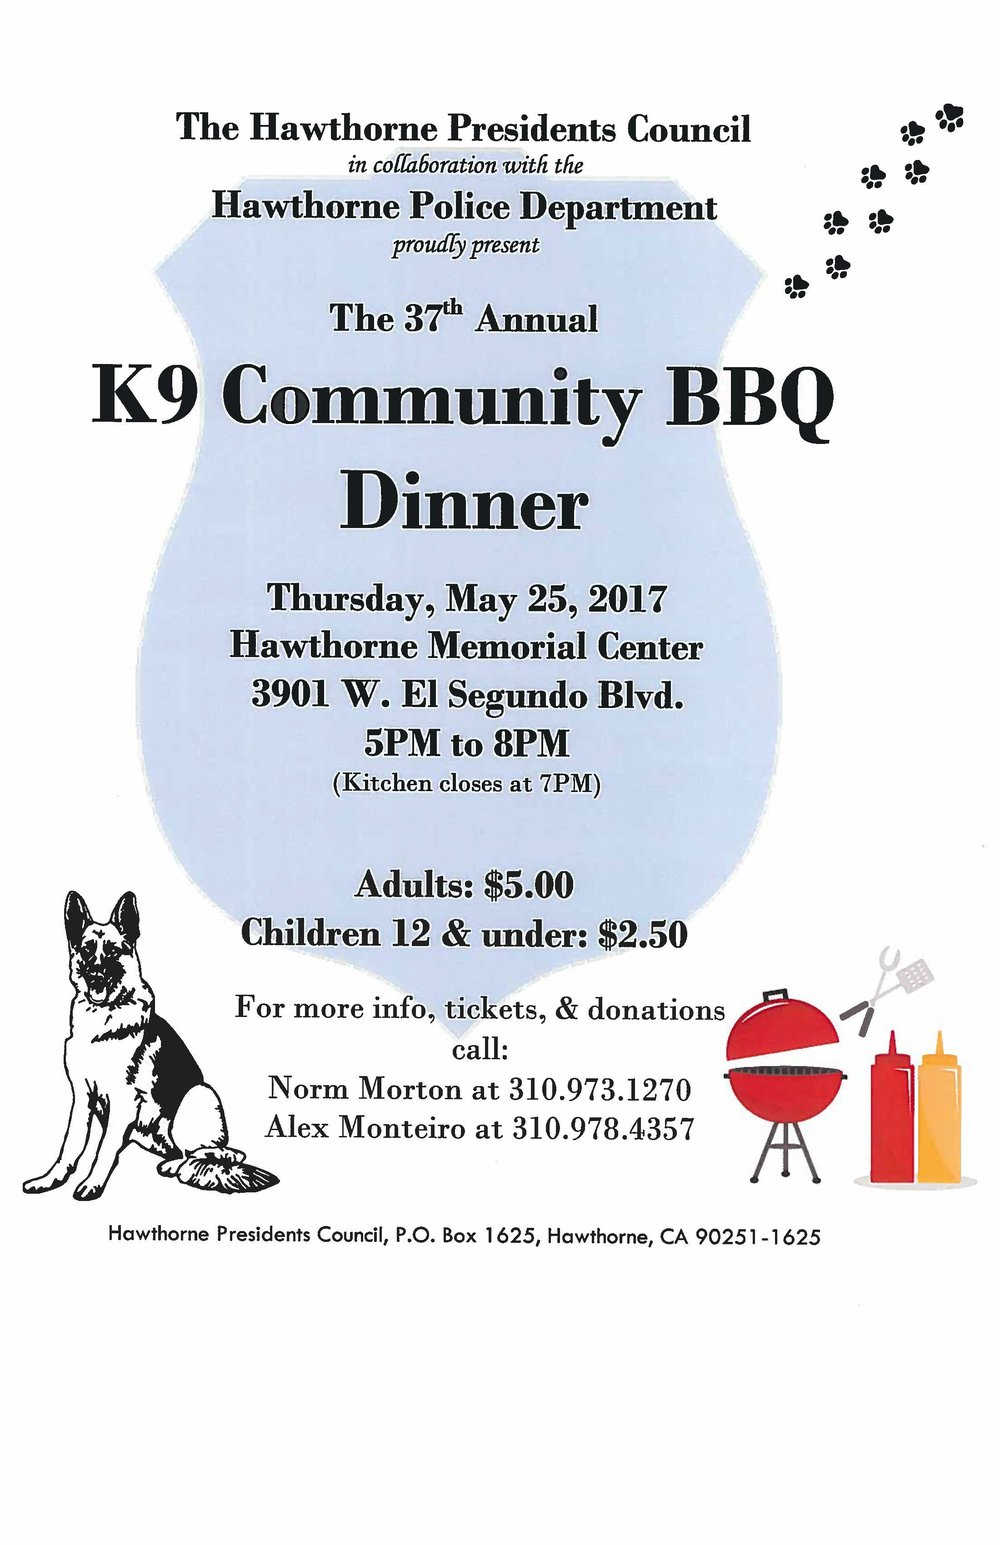 37th Annual K9 Community BBQ Dinner